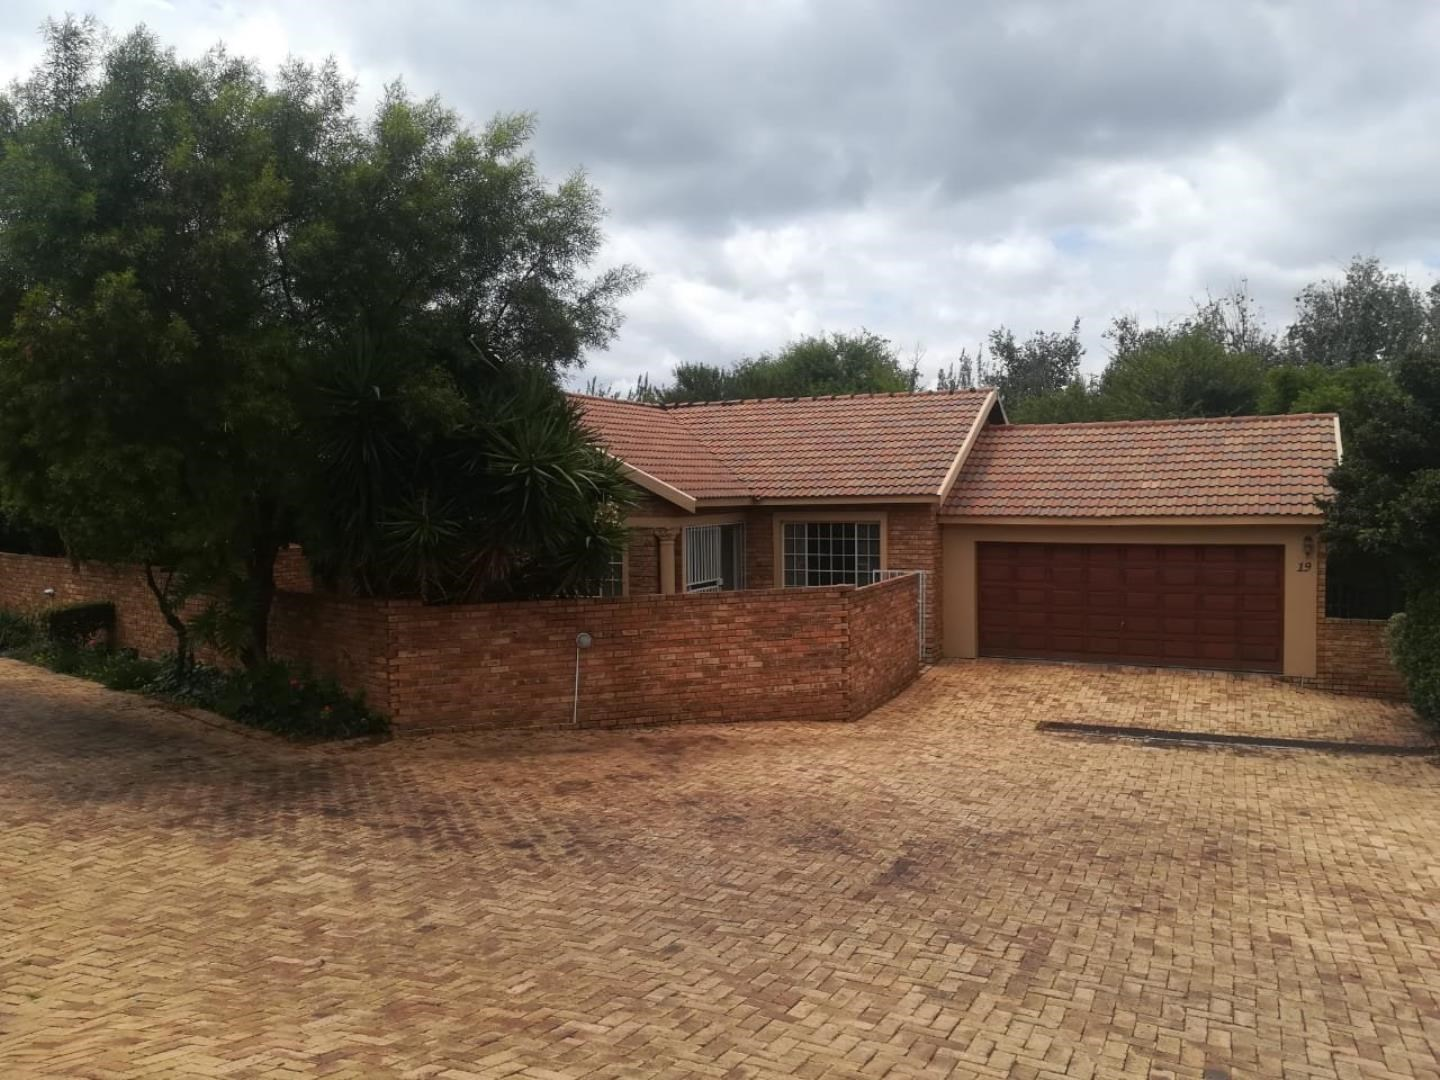 3 Bedroom House for Sale in Maroeladal